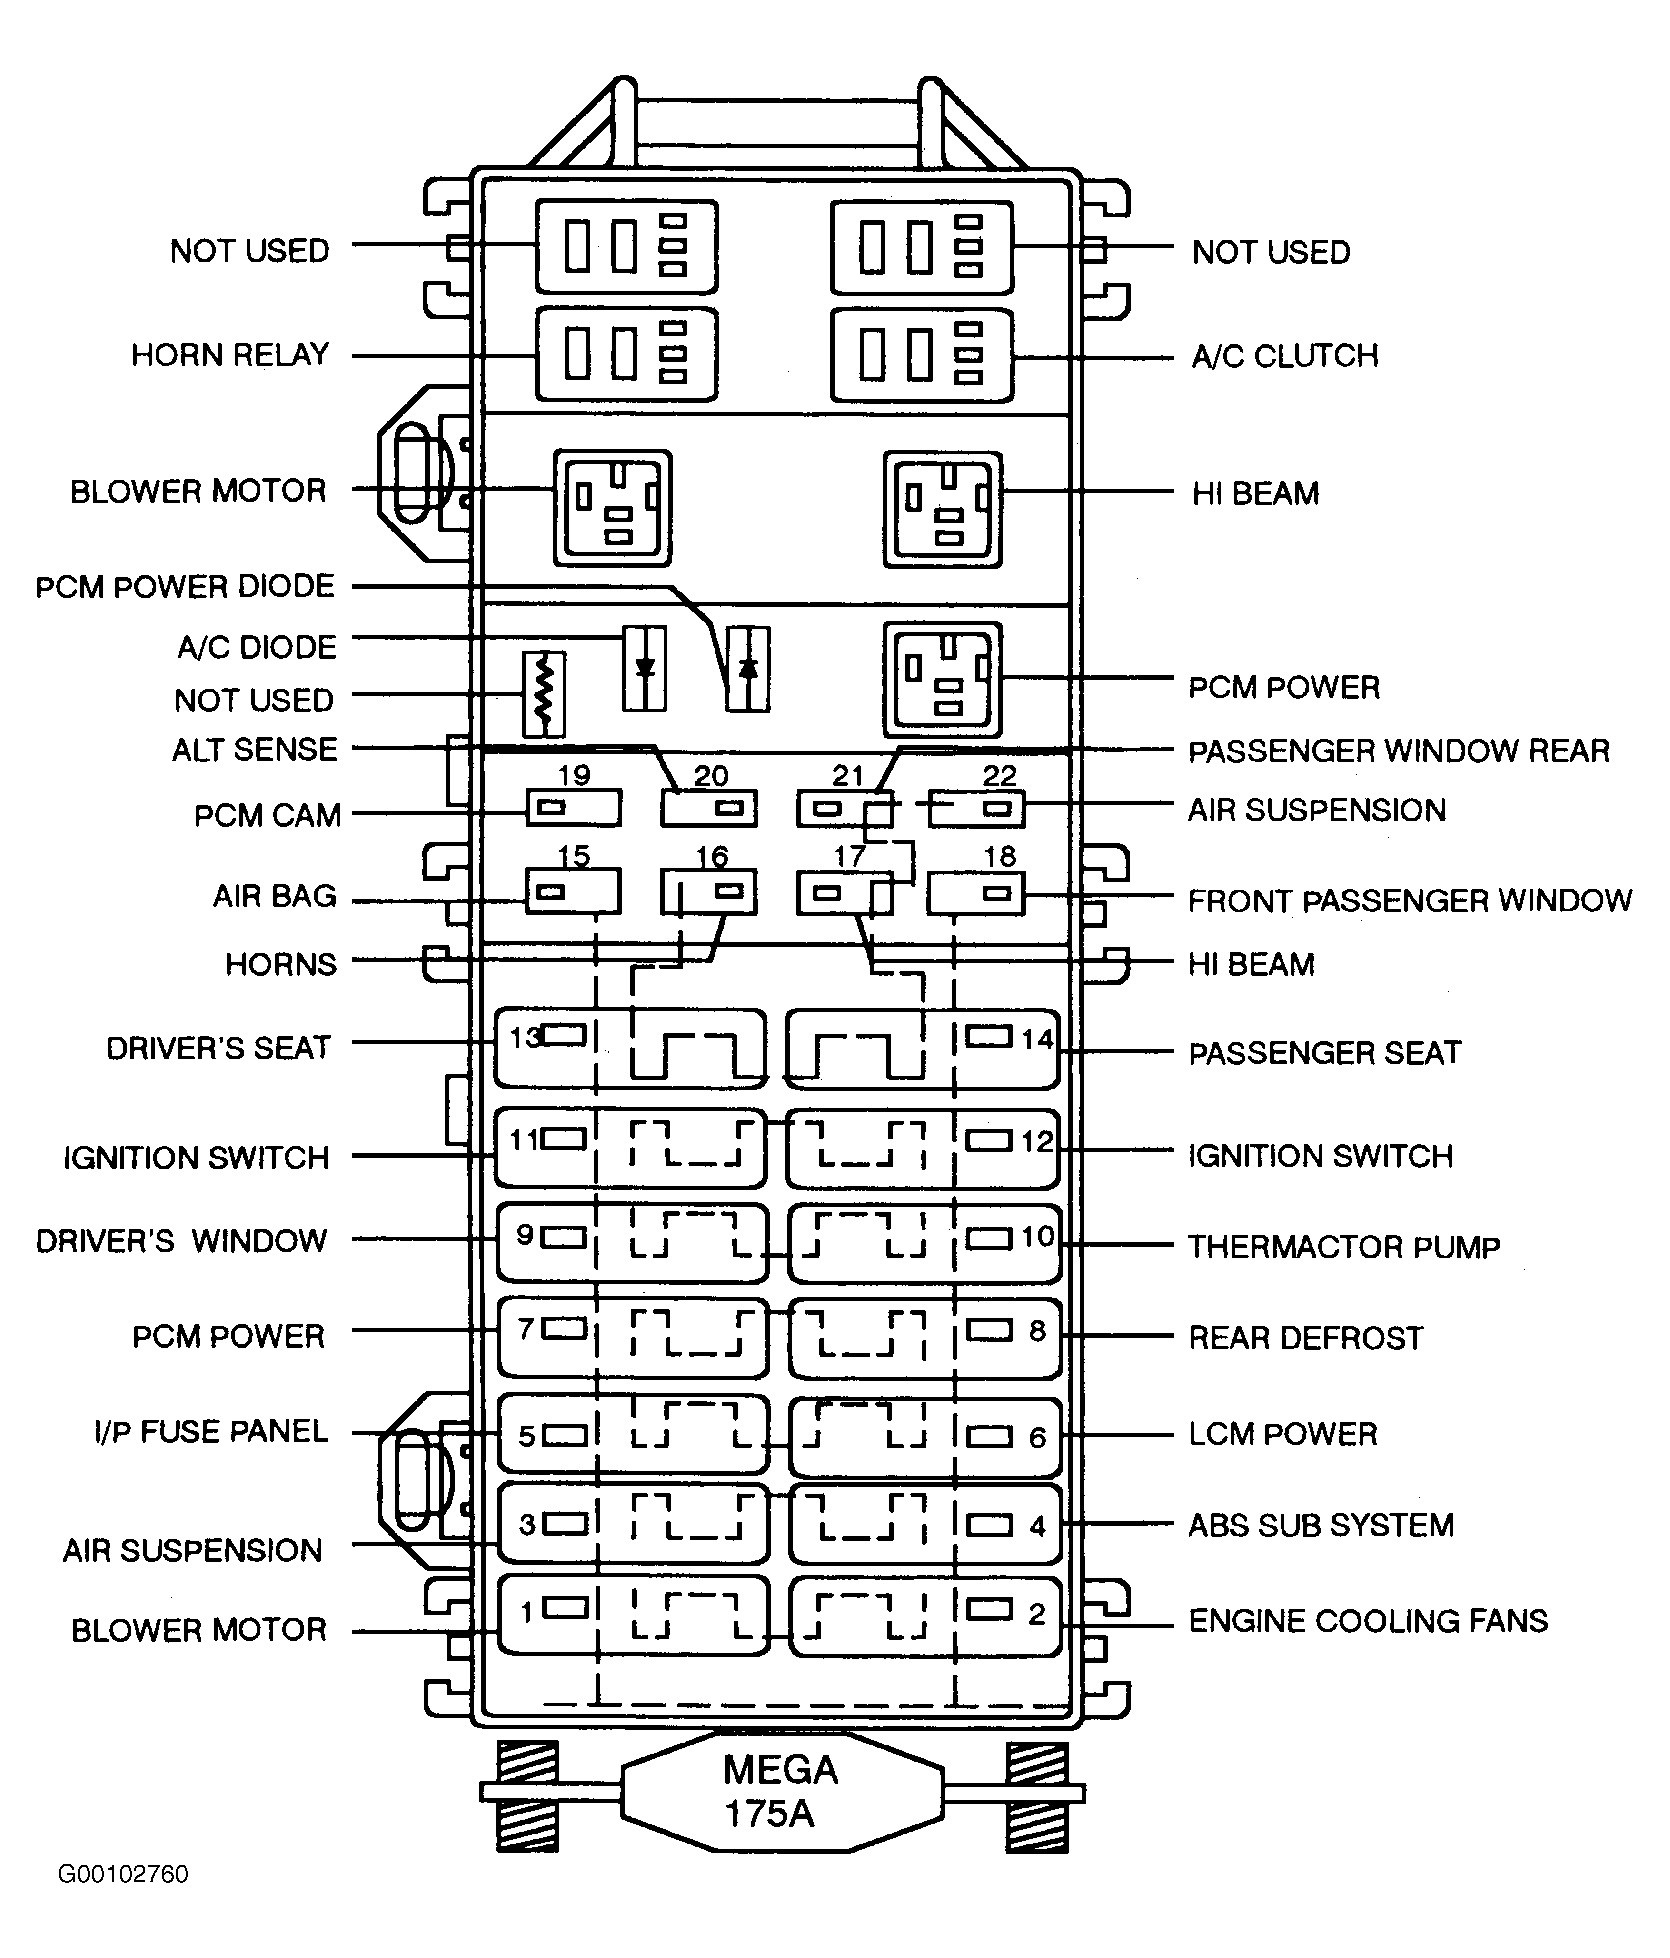 hight resolution of 69 lincoln continental fuse box location data wiring diagram 69 lincoln continental fuse box location 69 lincoln continental fuse box location